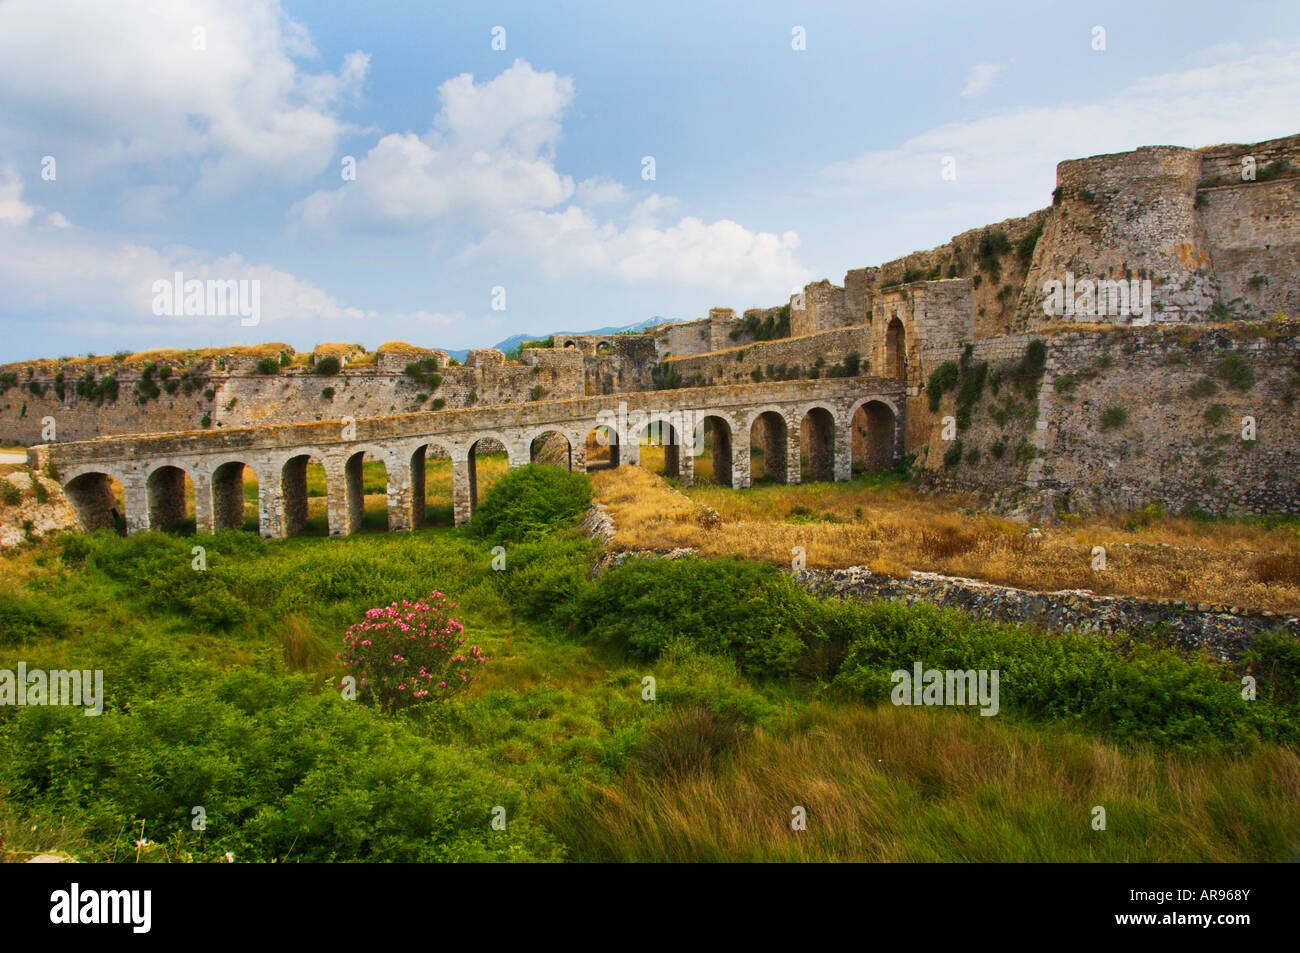 A 15th century Venetian fortress at Methoni Messinia Peloponesse Greece - Stock Image